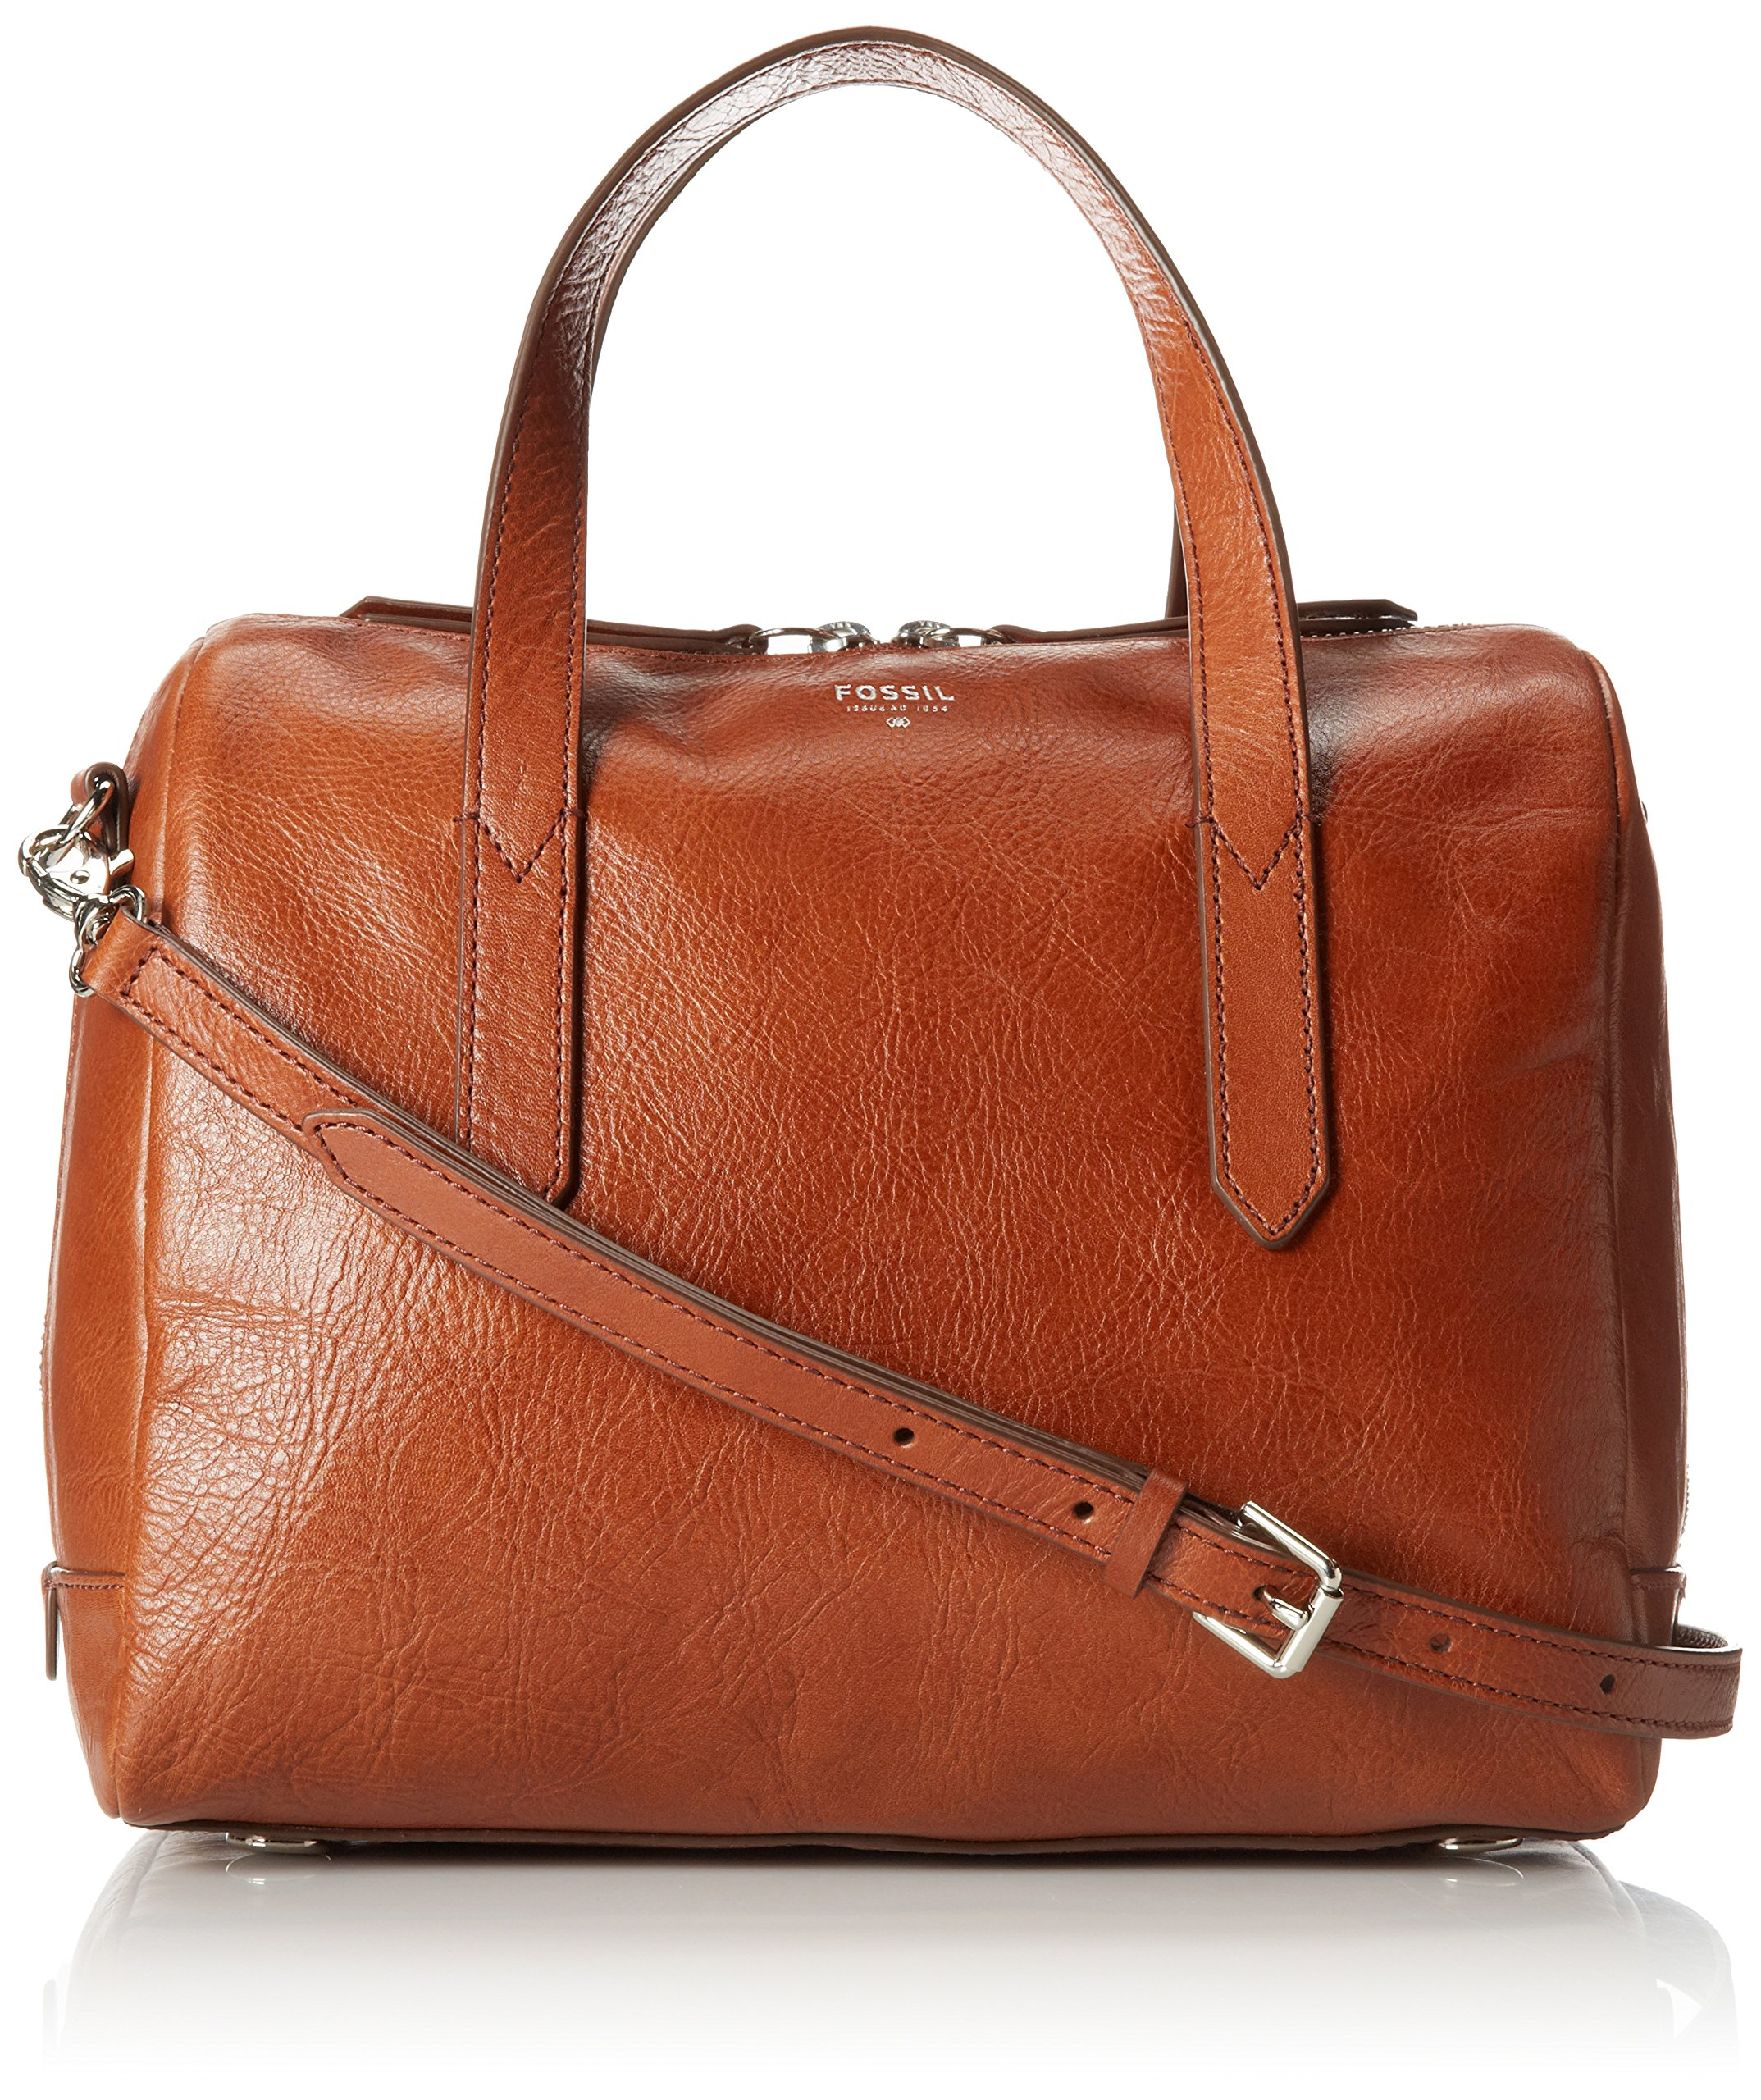 Fossil Sydney Satchel, Brown, One Size